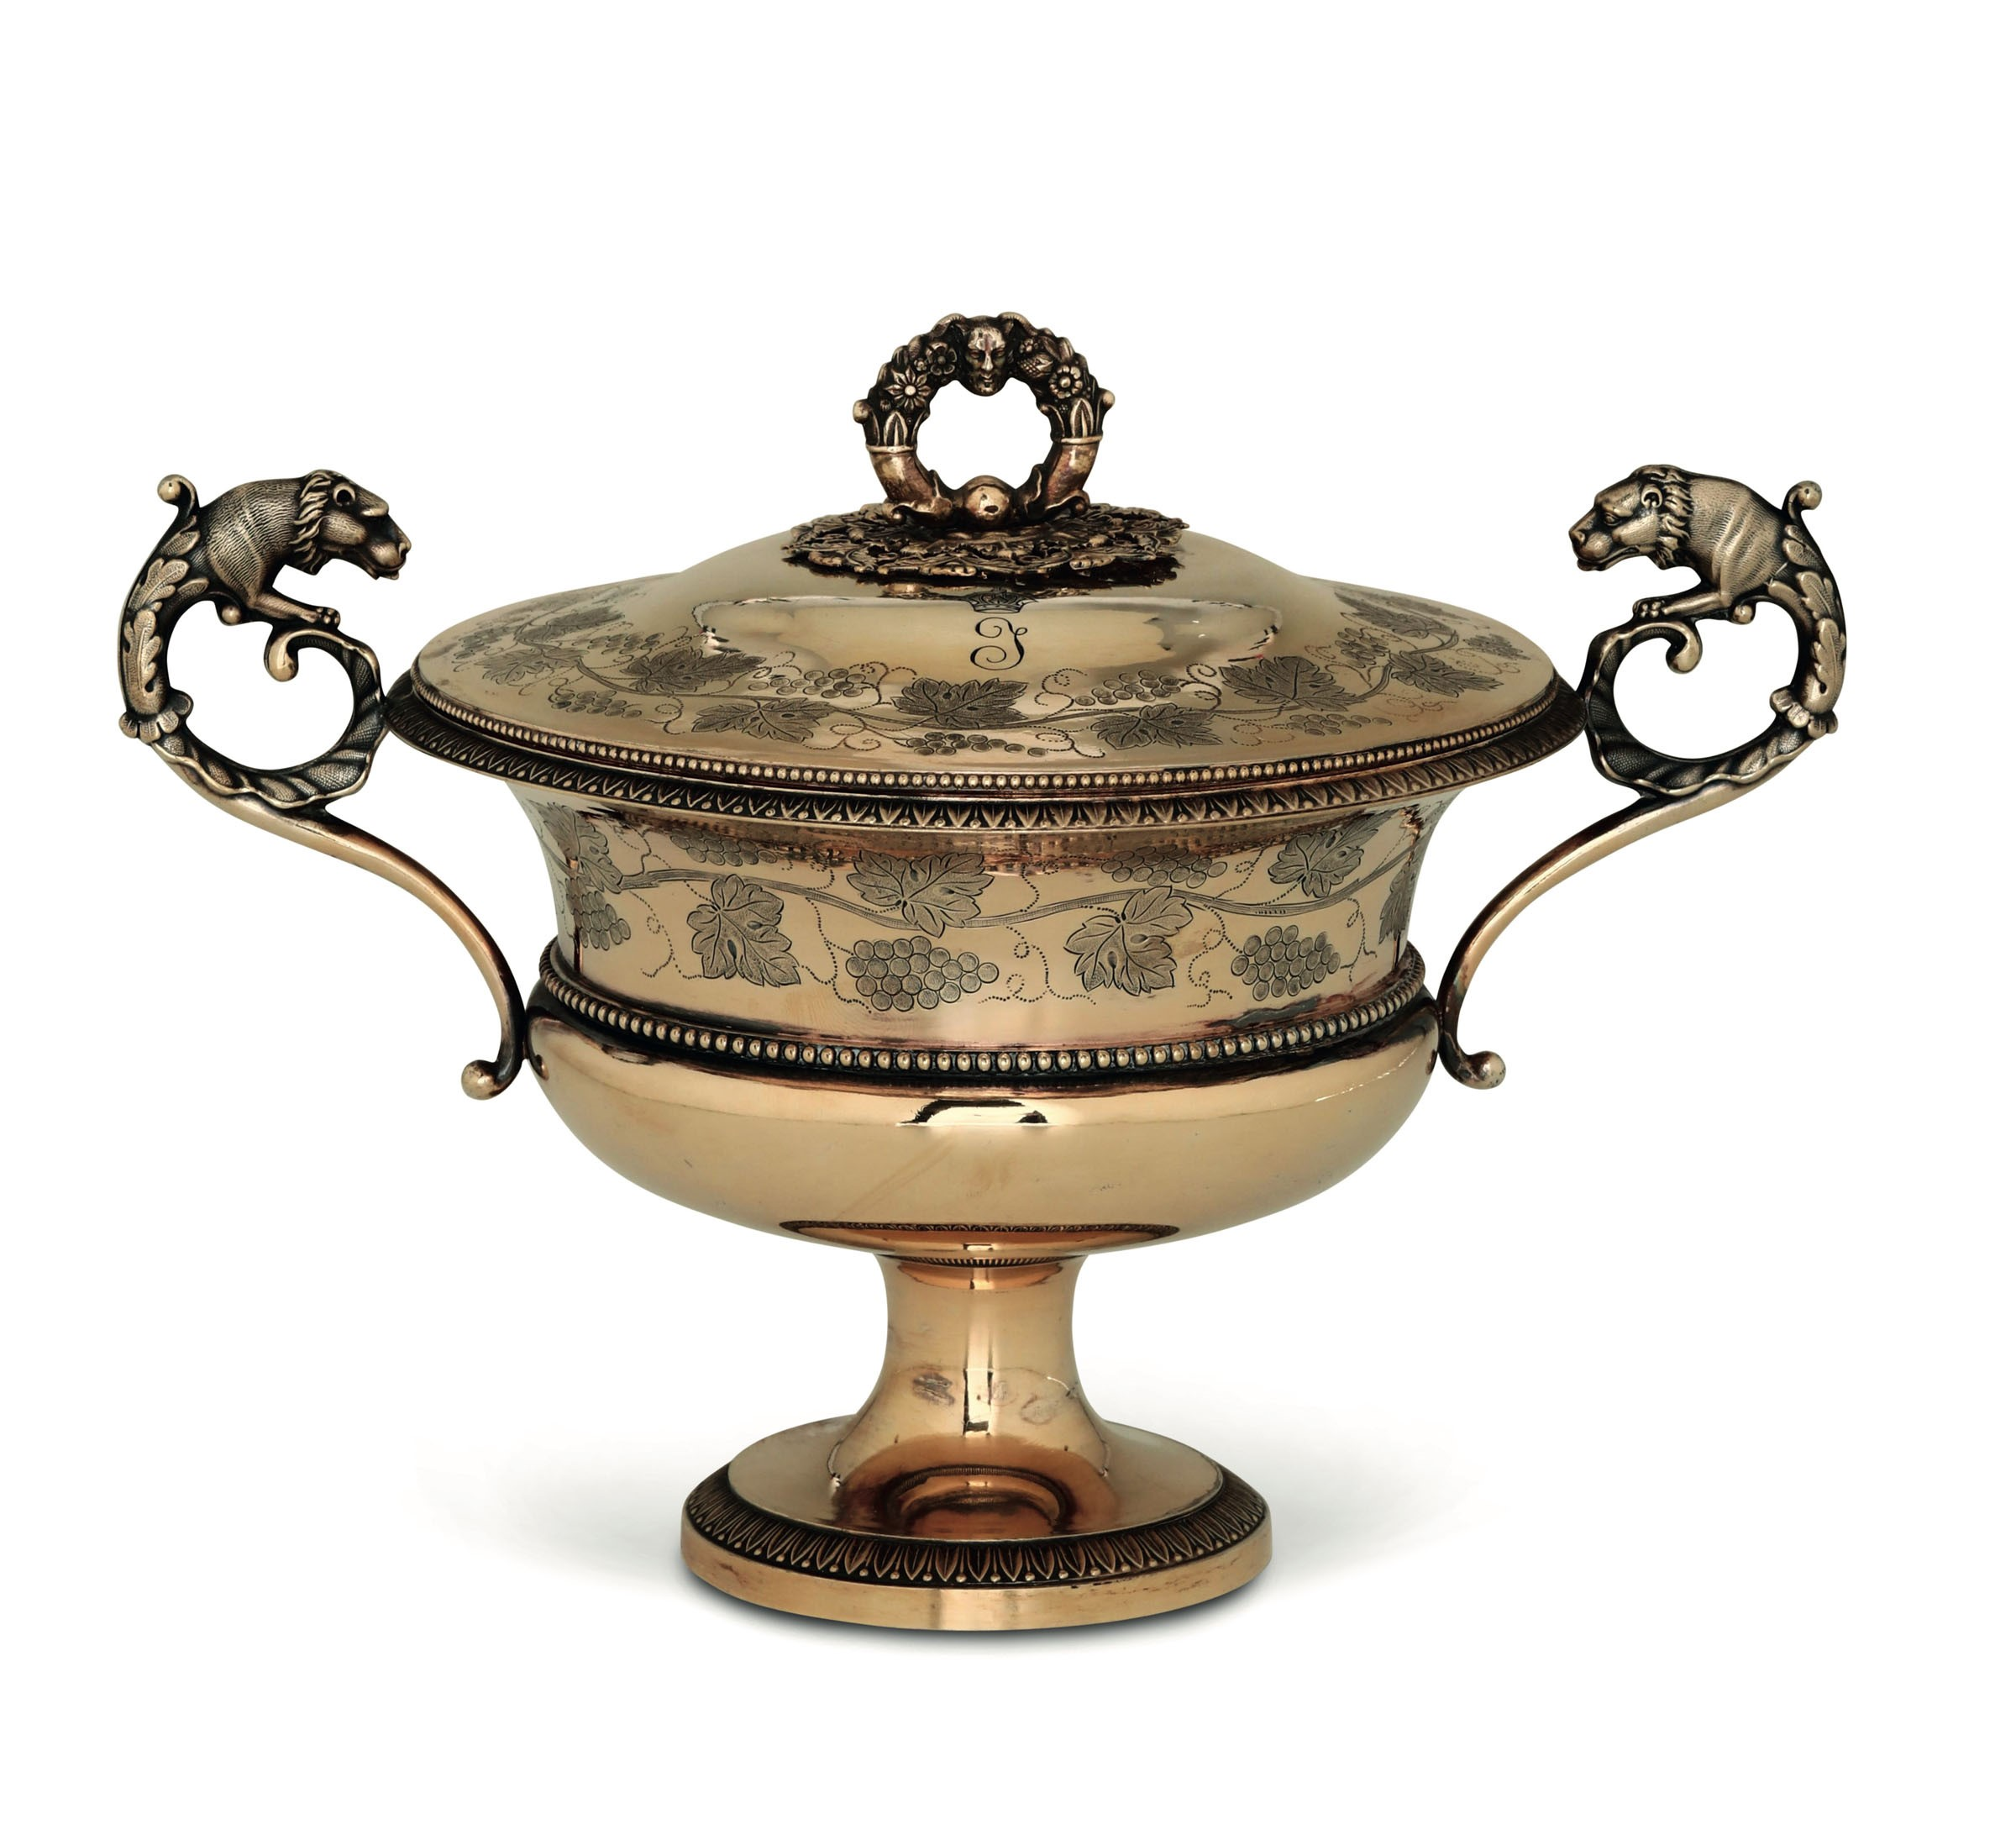 Lot 45 - A silver sugar pot, Paris, 1830s - Molten, embossed and chiselled vermeille silver. [...]